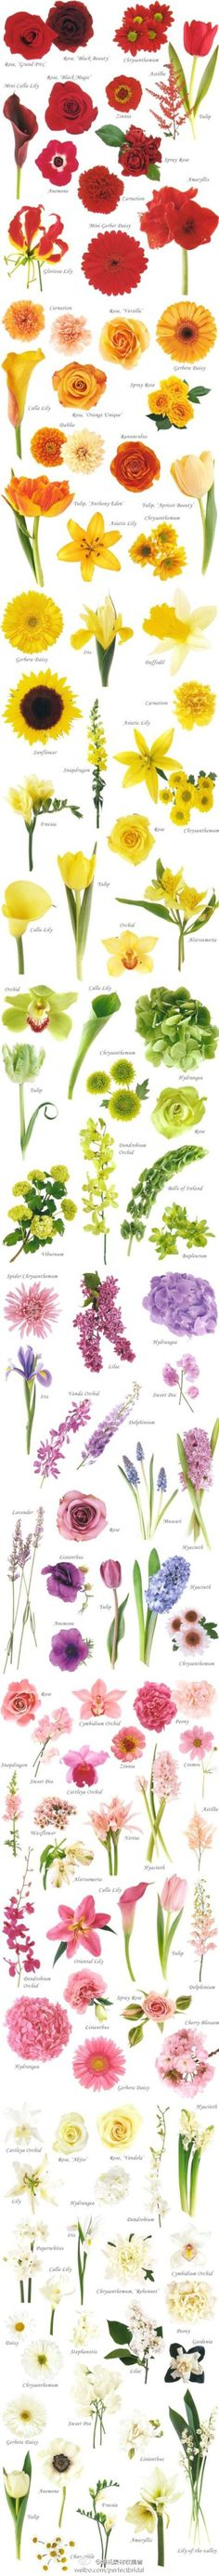 This is a fantastic (and comprehensive) guide of different kinds of wedding flowers, complete with color photos and names.  Very helpful!